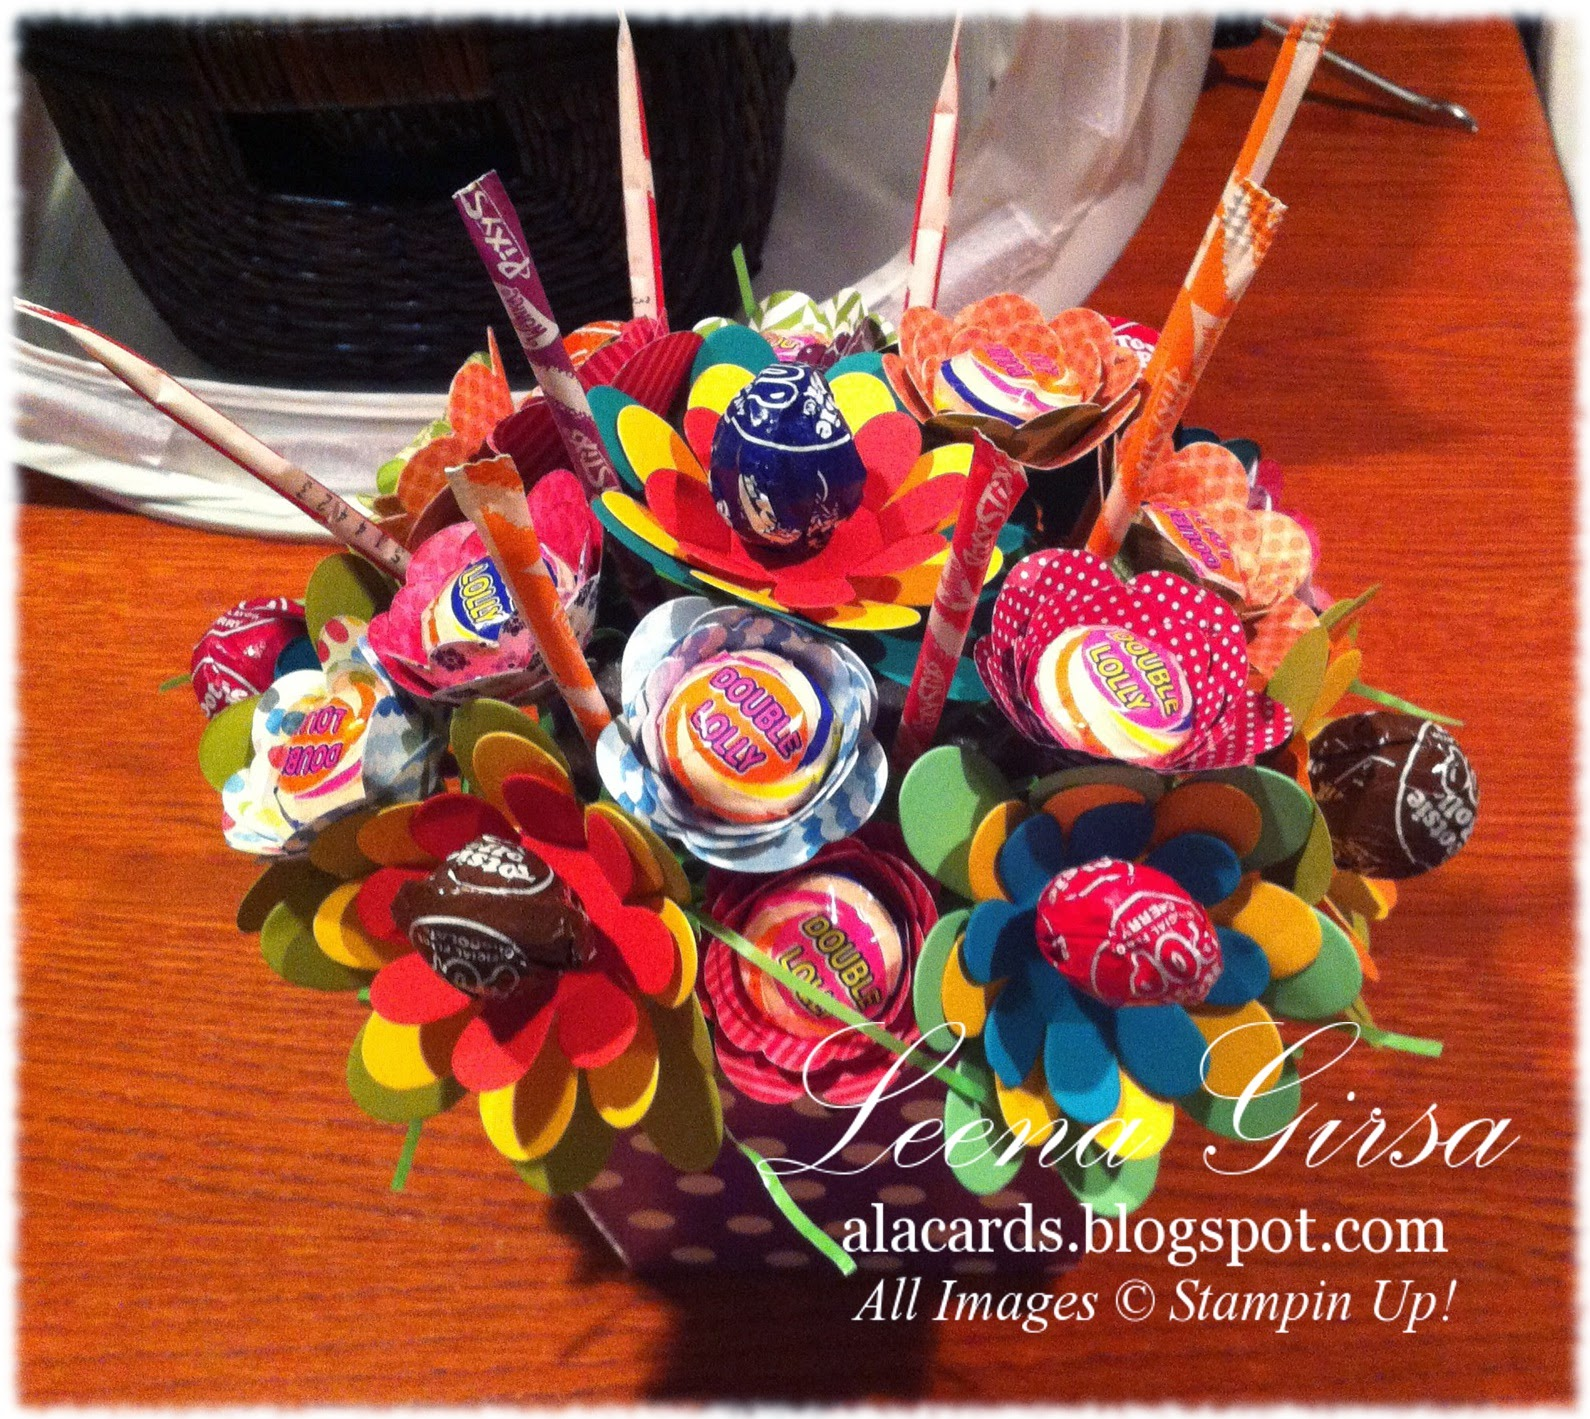 A La Cards: Candy Bouquet, Anyone?